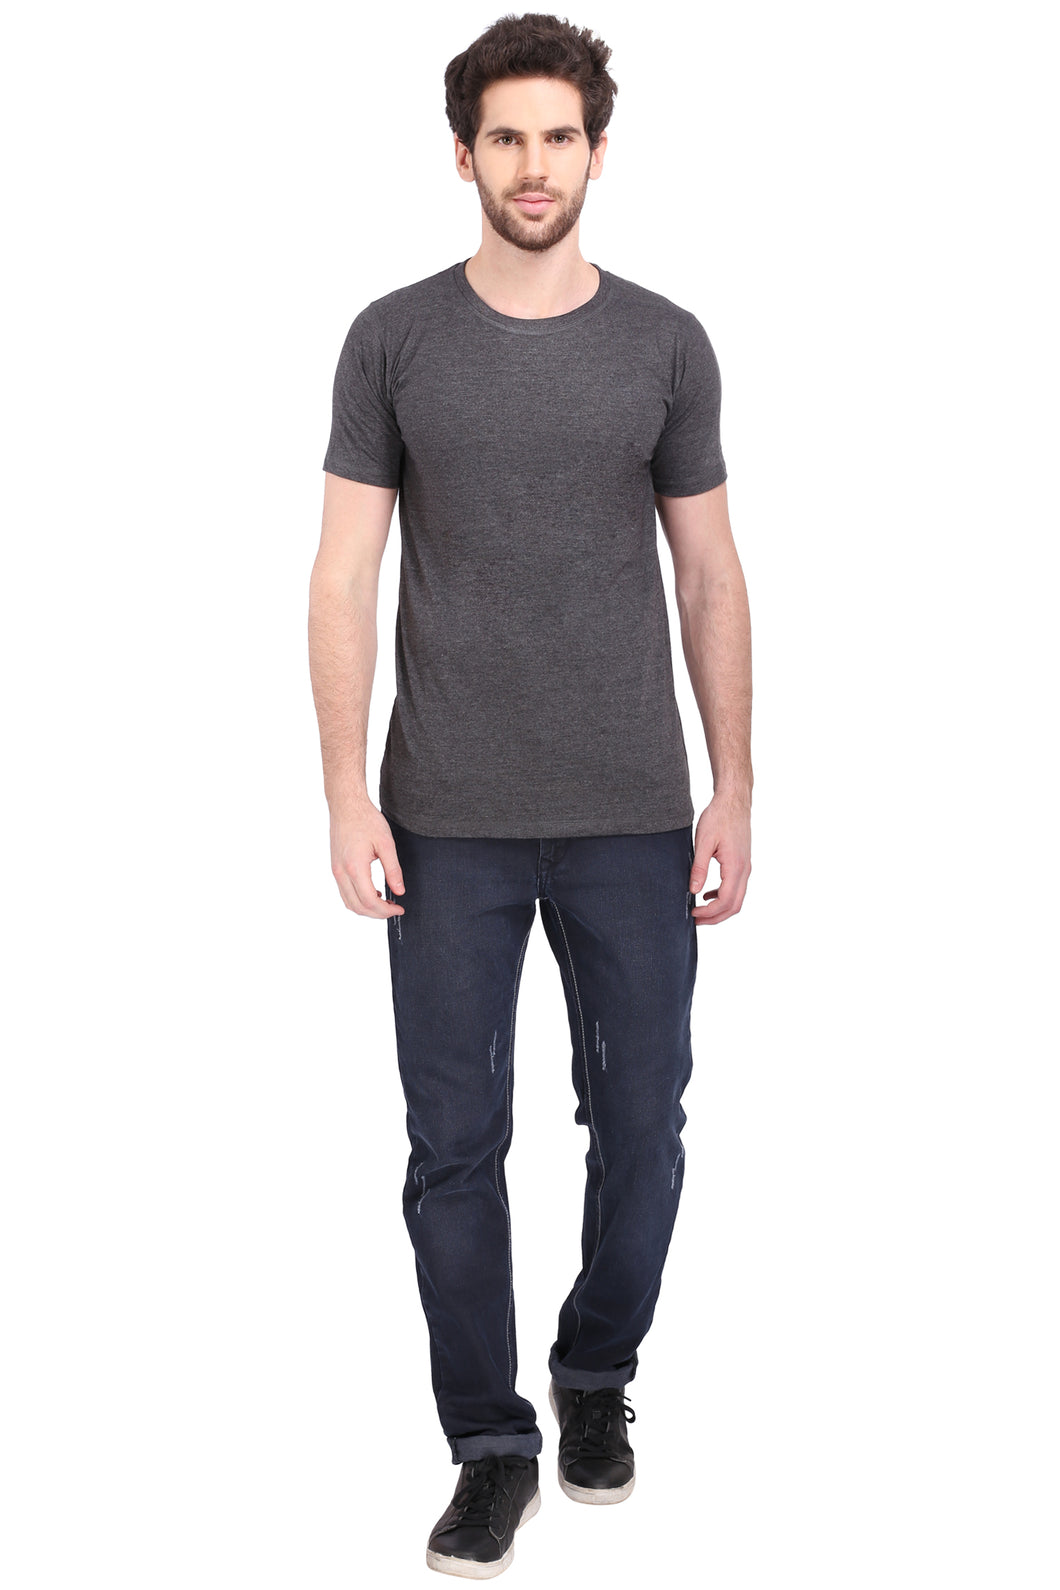 Round Neck Charcoal Grey - T Shirt